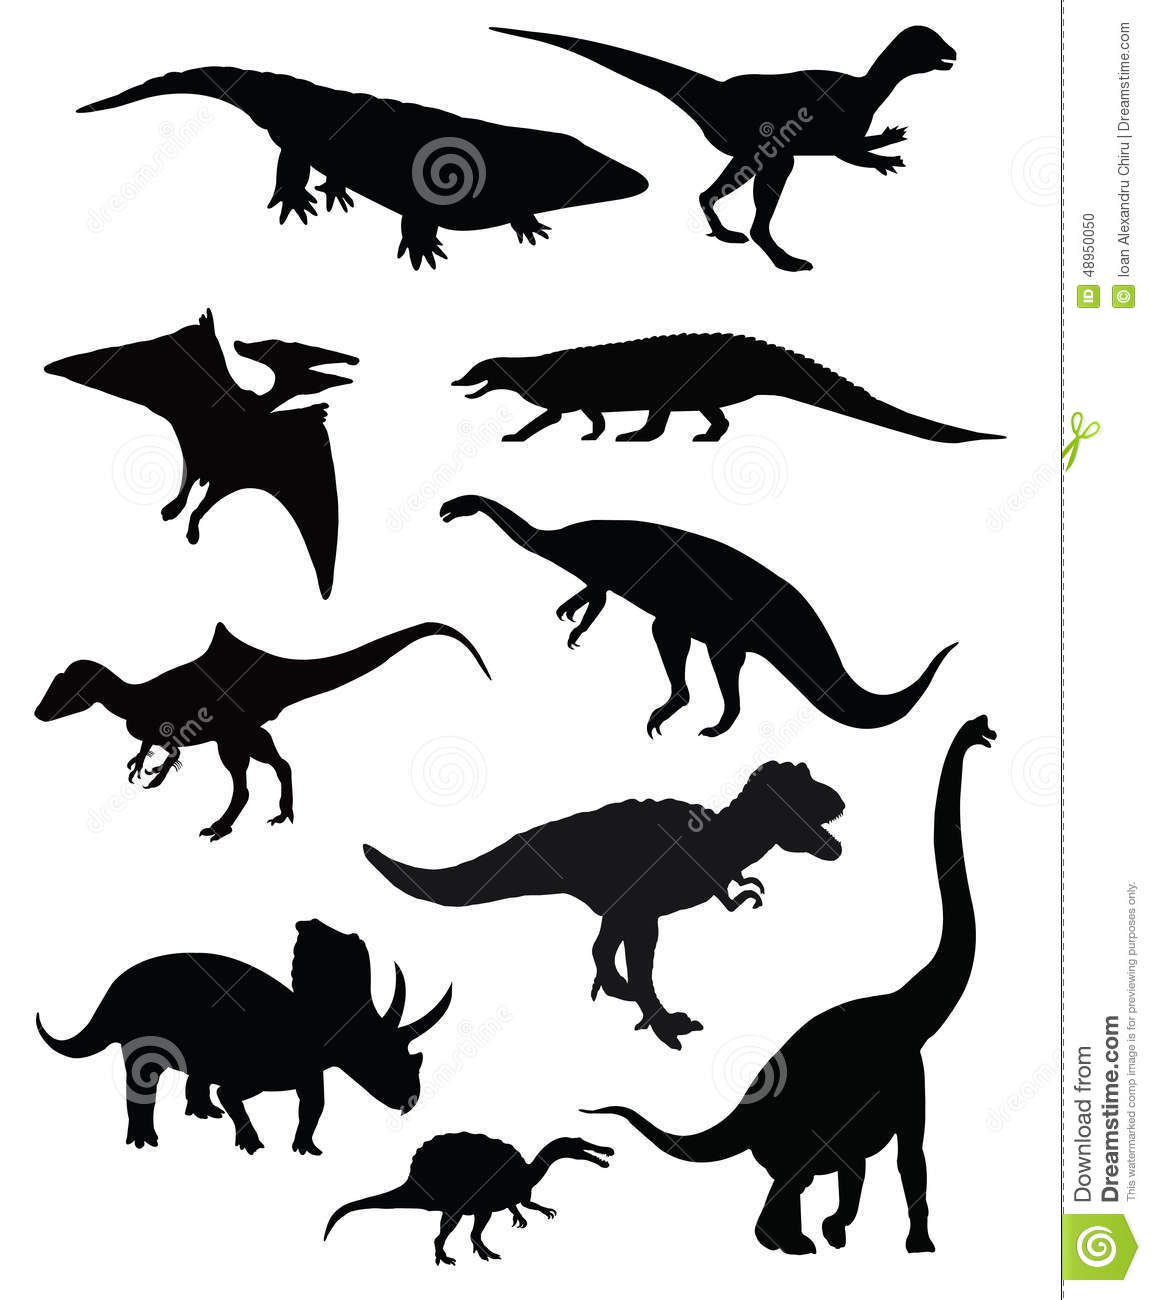 Group Ten Dinosaurs Isolated Five Vector Drawings likewise Ngsversion Adapt besides F D Bc E B A further Australian Animals Printable Pack besides Ani. on shadow matching animals 2